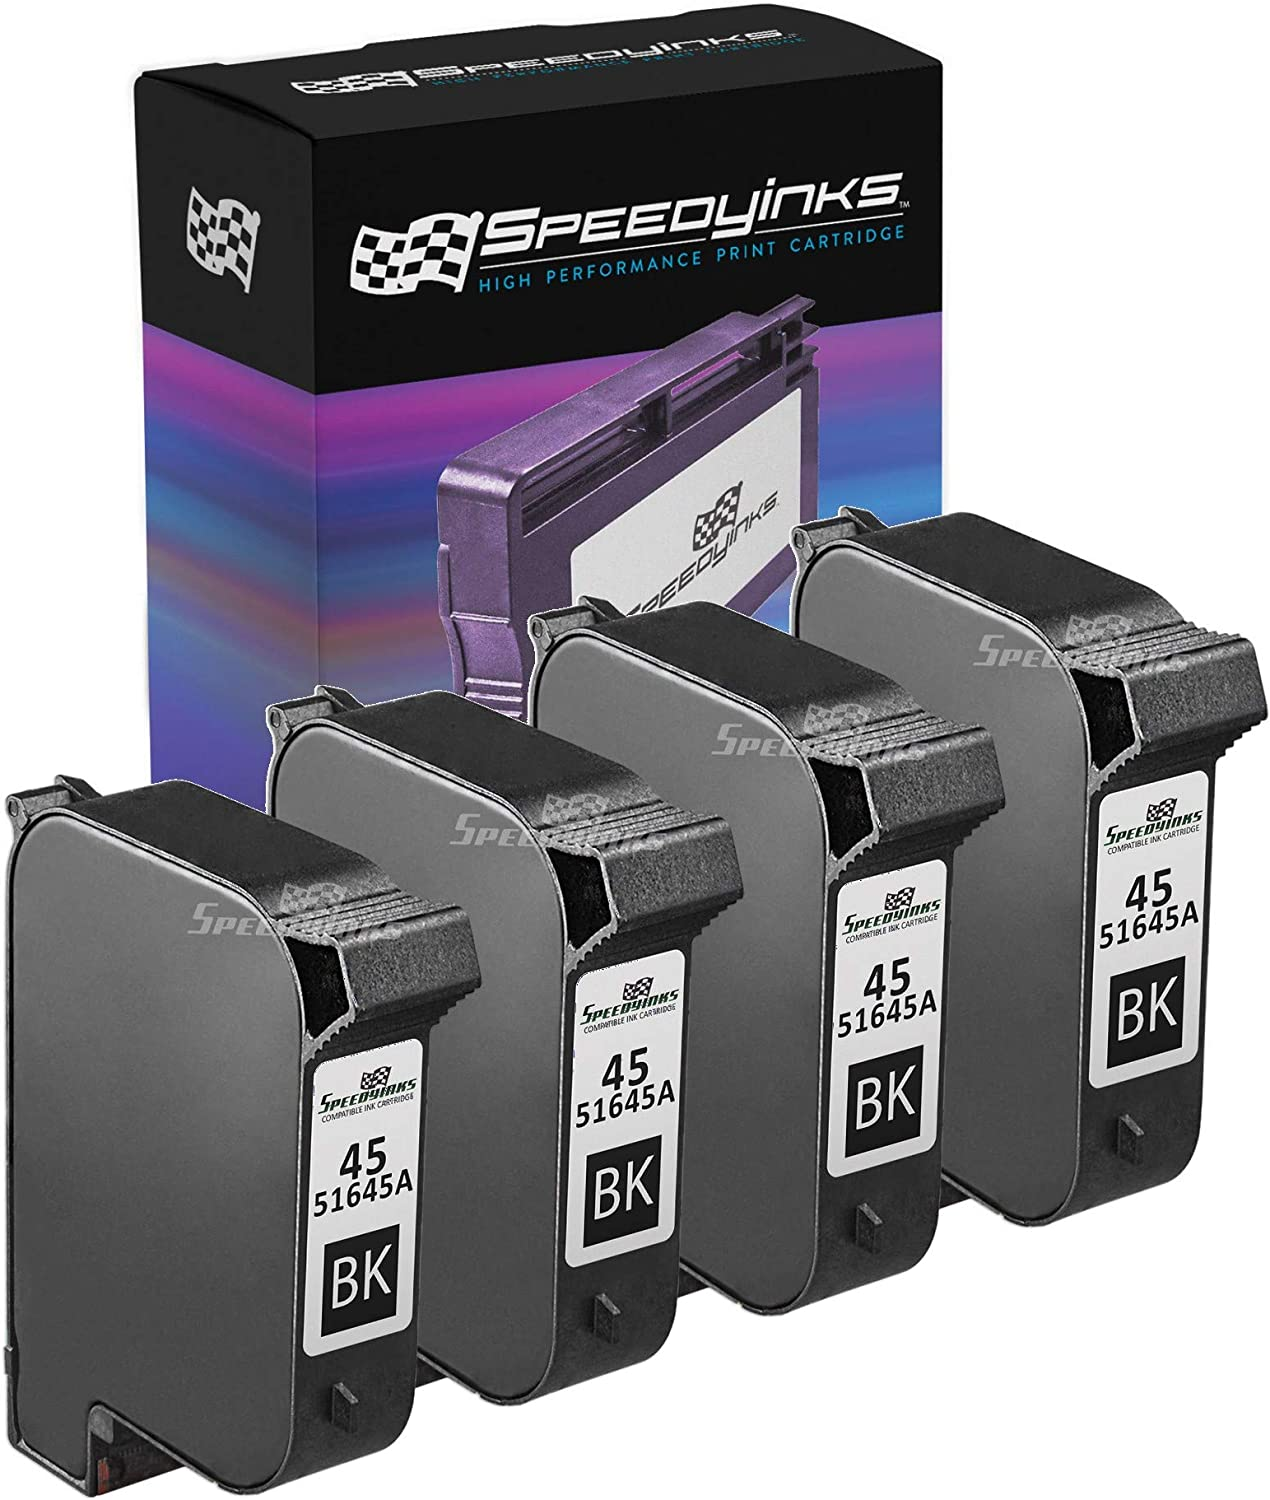 Speedy Inks Remanufactured Ink Cartridge Replacement for HP 45 (Black, 4-Pack)